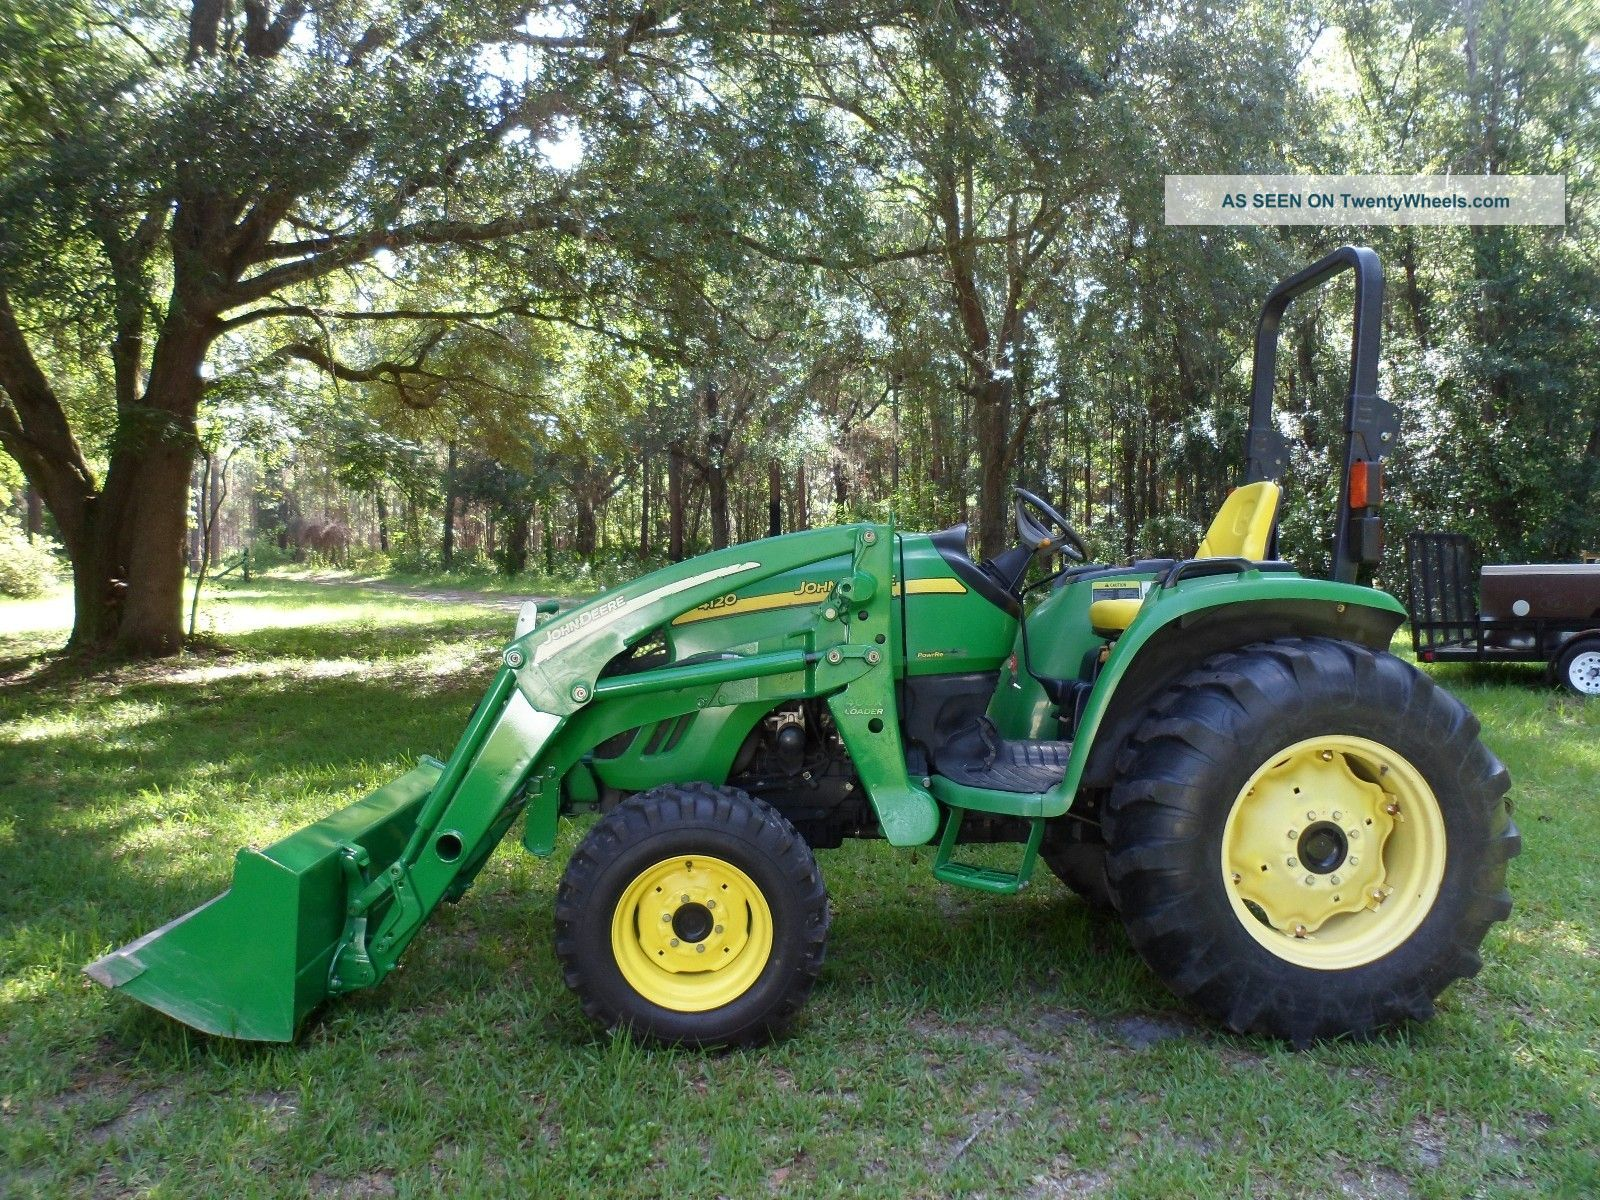 2006 John Deere 4120 Compact 4x4 Tractor With Front Loader ...